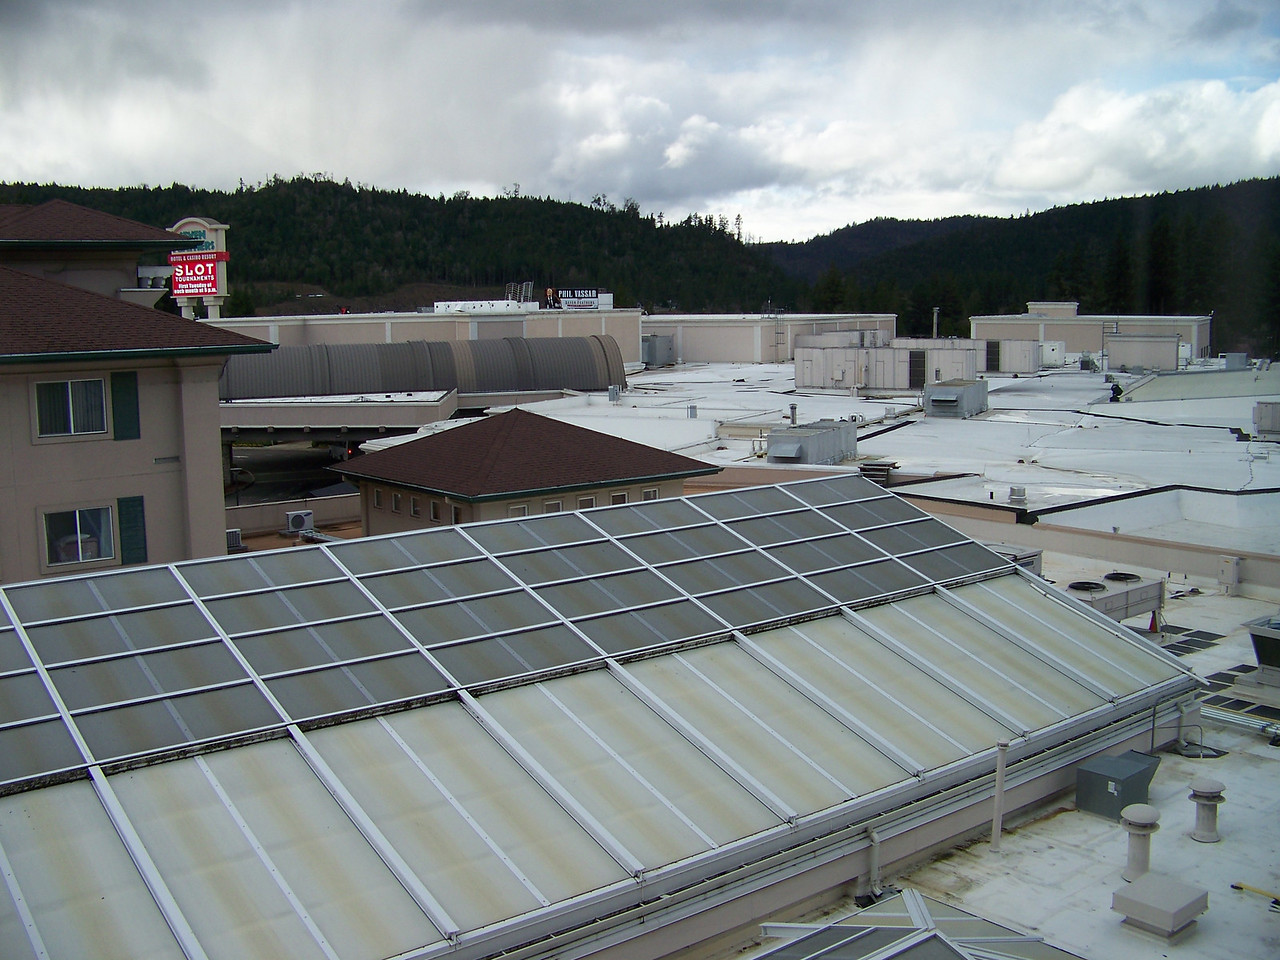 Our hotel room also looked across the roof of the casino, which shows how large the entire complex is.  Directly in front, the sloped part of the roof is over the hotel's swimming pool.<br /> [Seven Feathers Resort in Canyonville, OR]